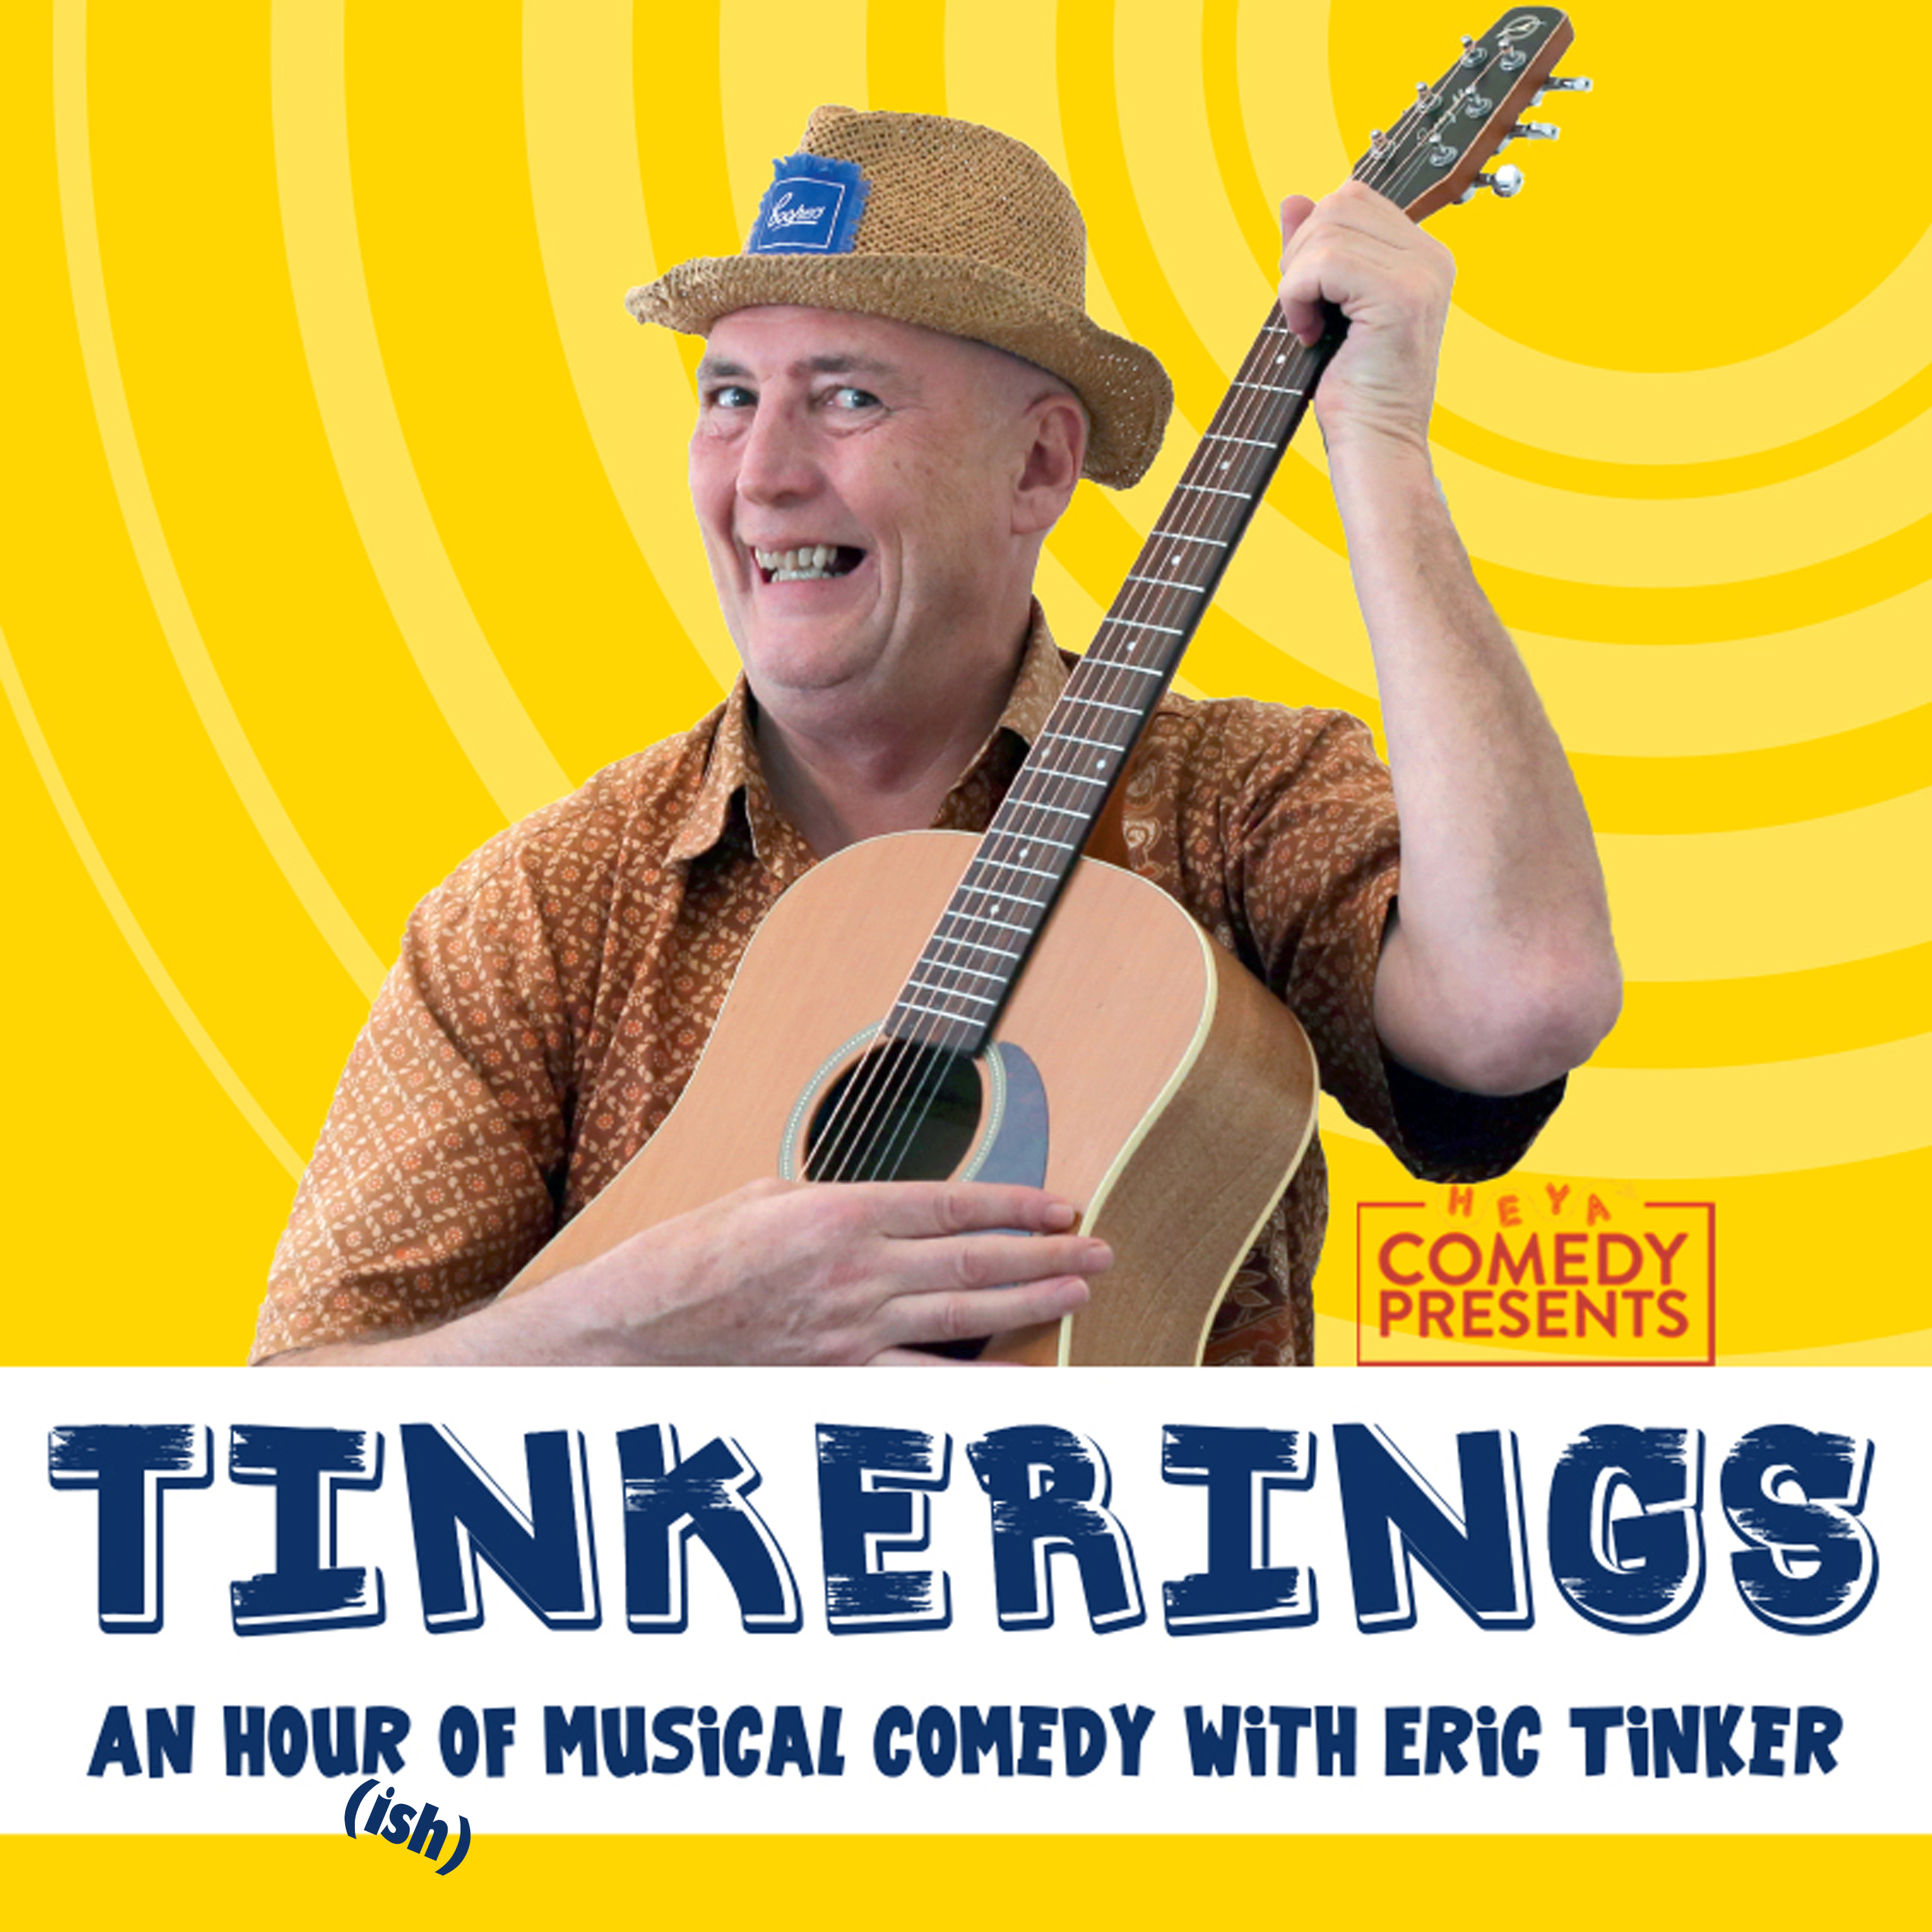 Tinkerings, performed by Eric Tinker